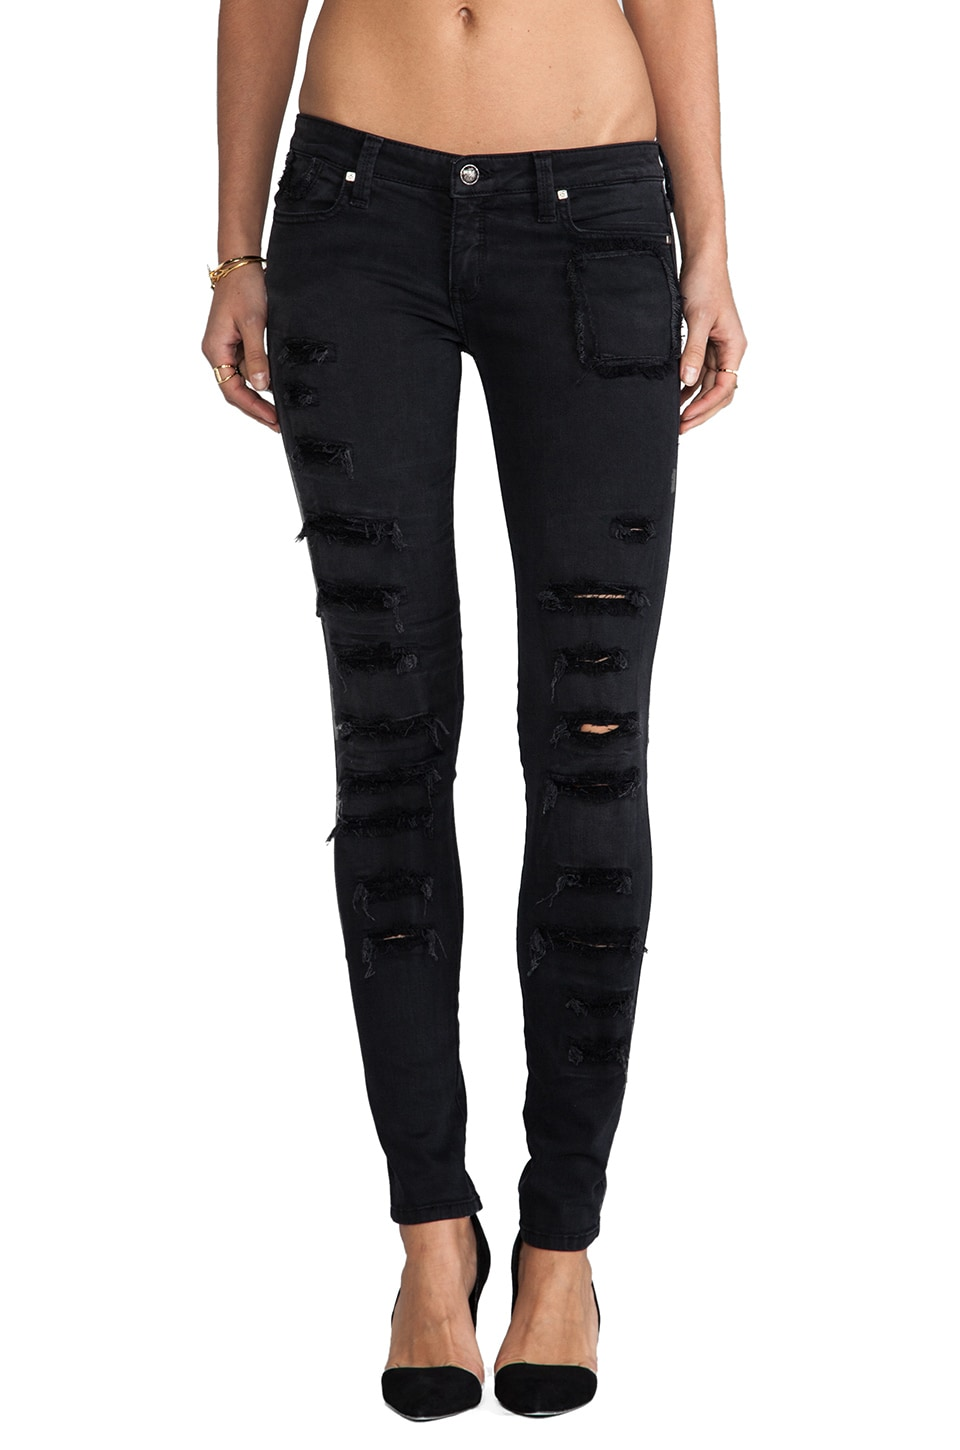 Frankie B. Jeans More Loved Skinny's in Black